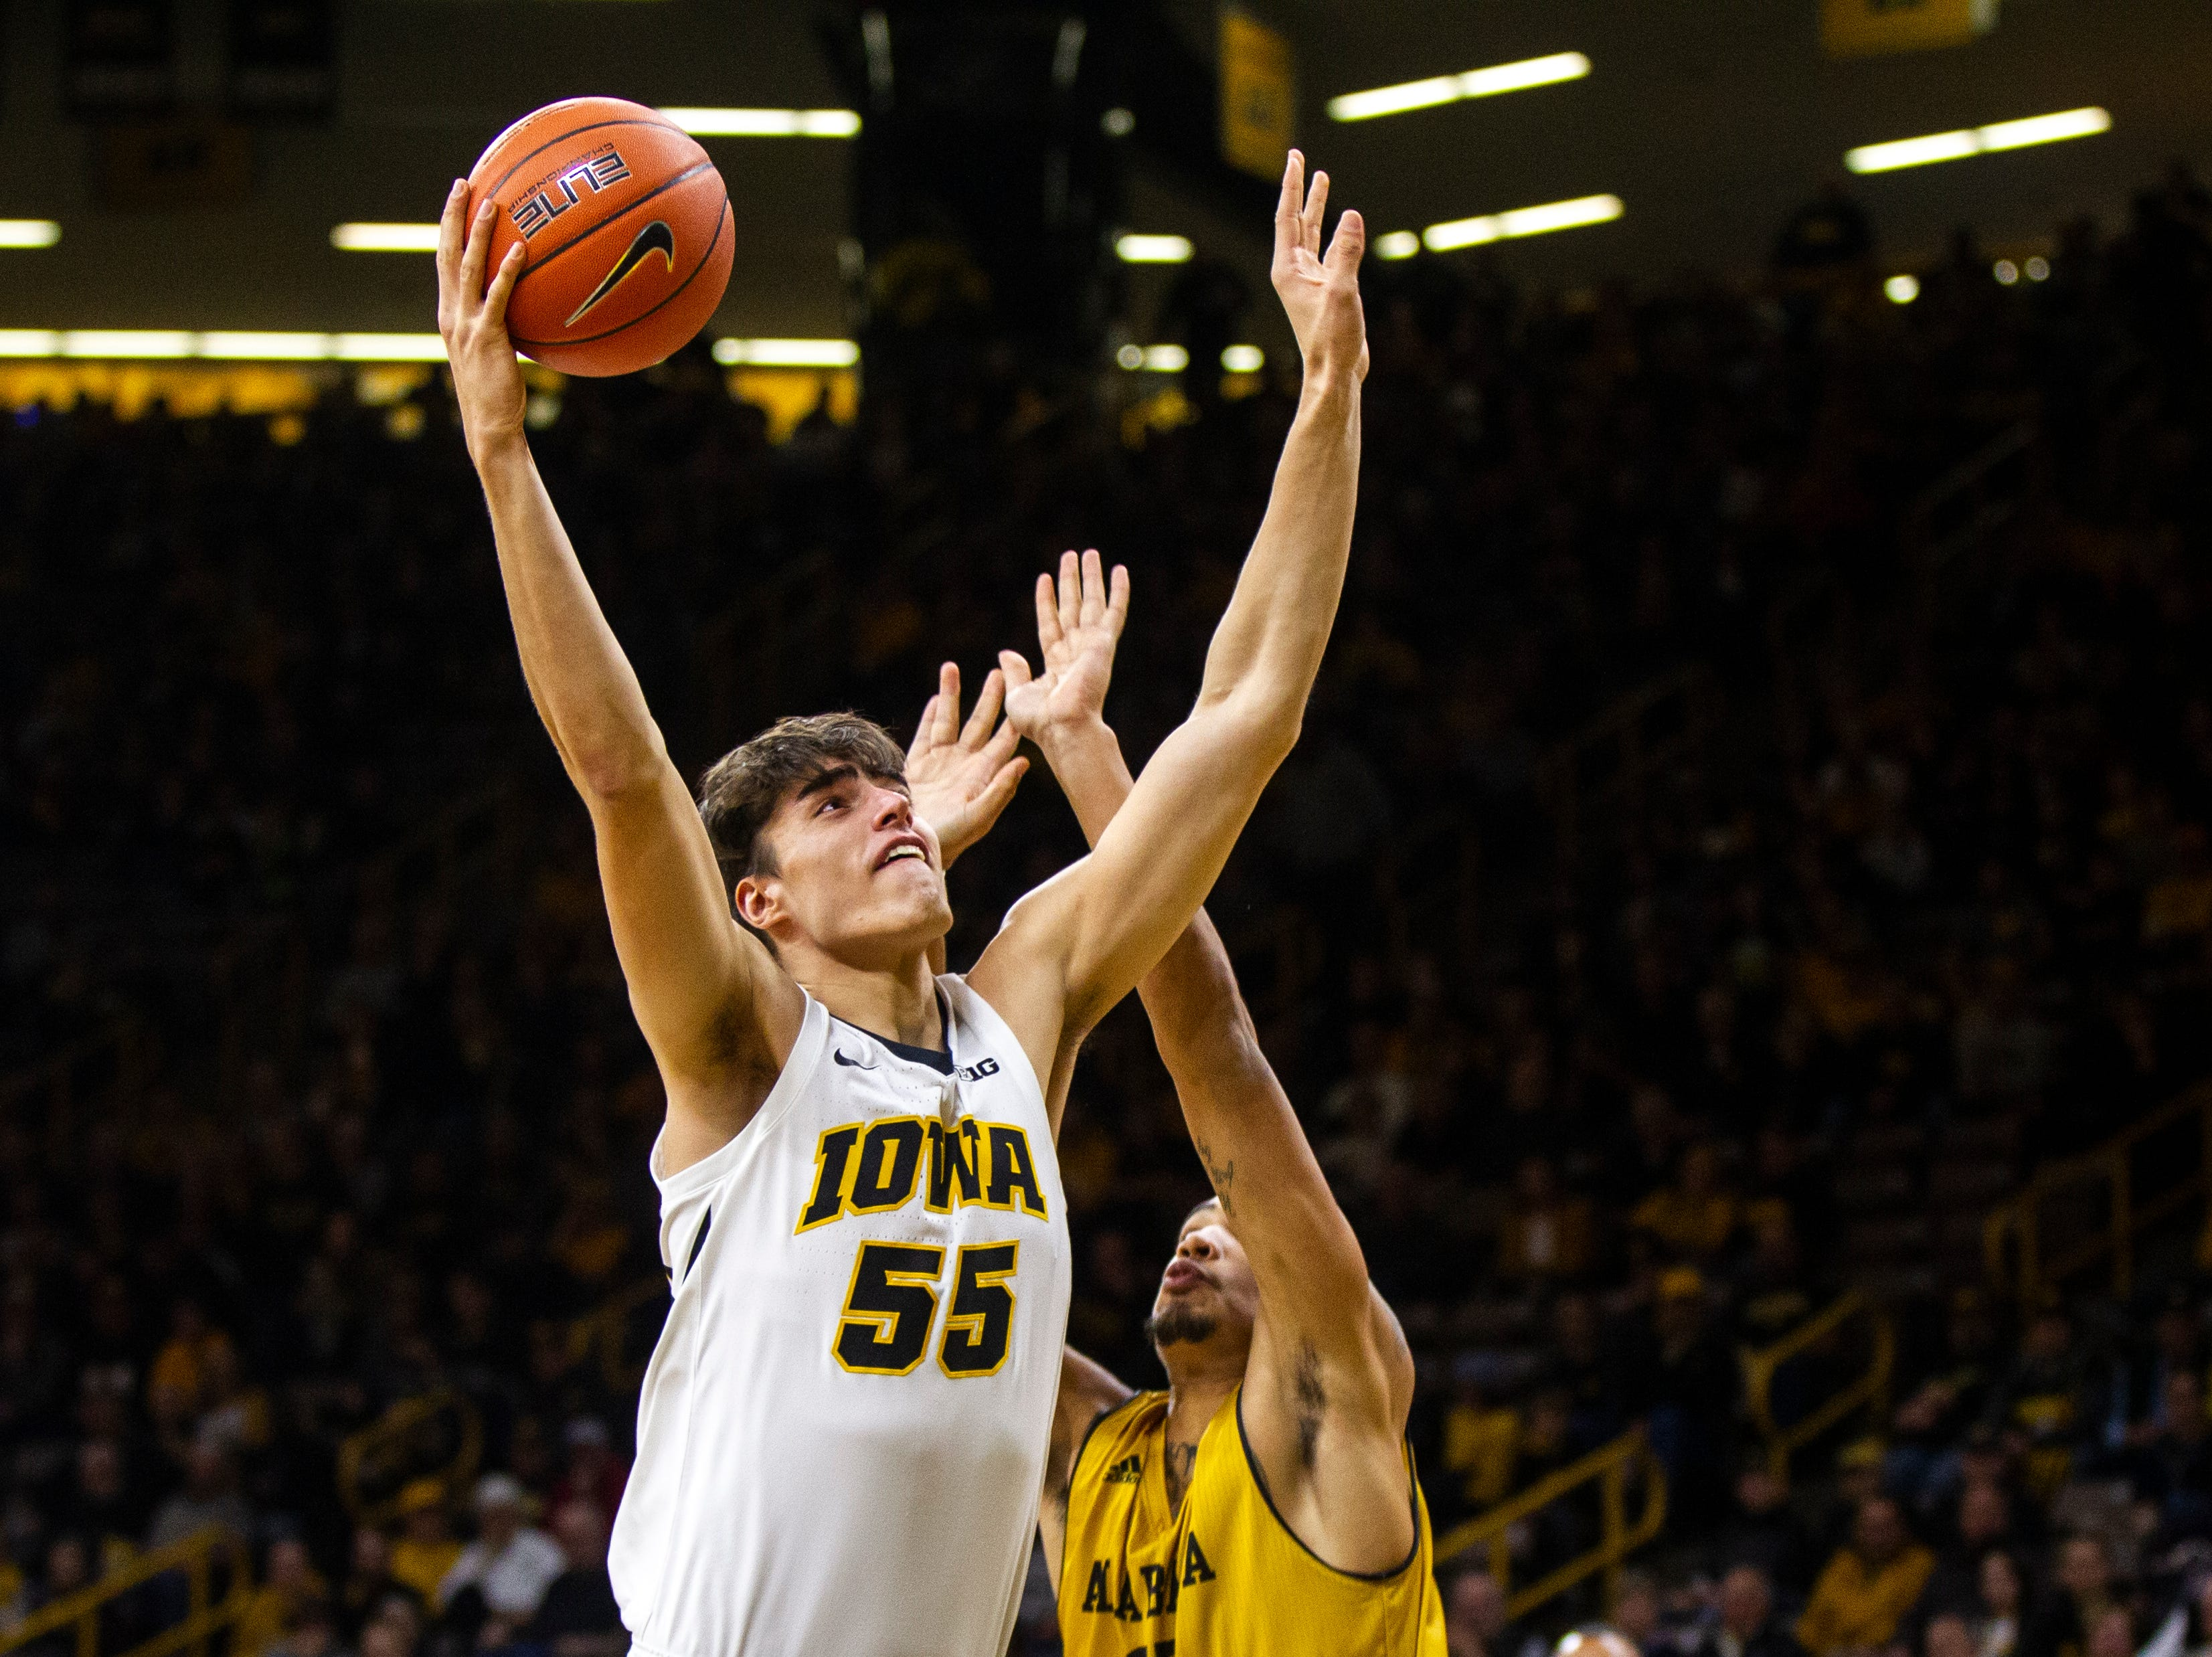 Iowa forward Luka Garza (55) attempts a shot during an NCAA men's basketball game on Wednesday, Nov. 21, 2018, at Carver-Hawkeye Arena in Iowa City.